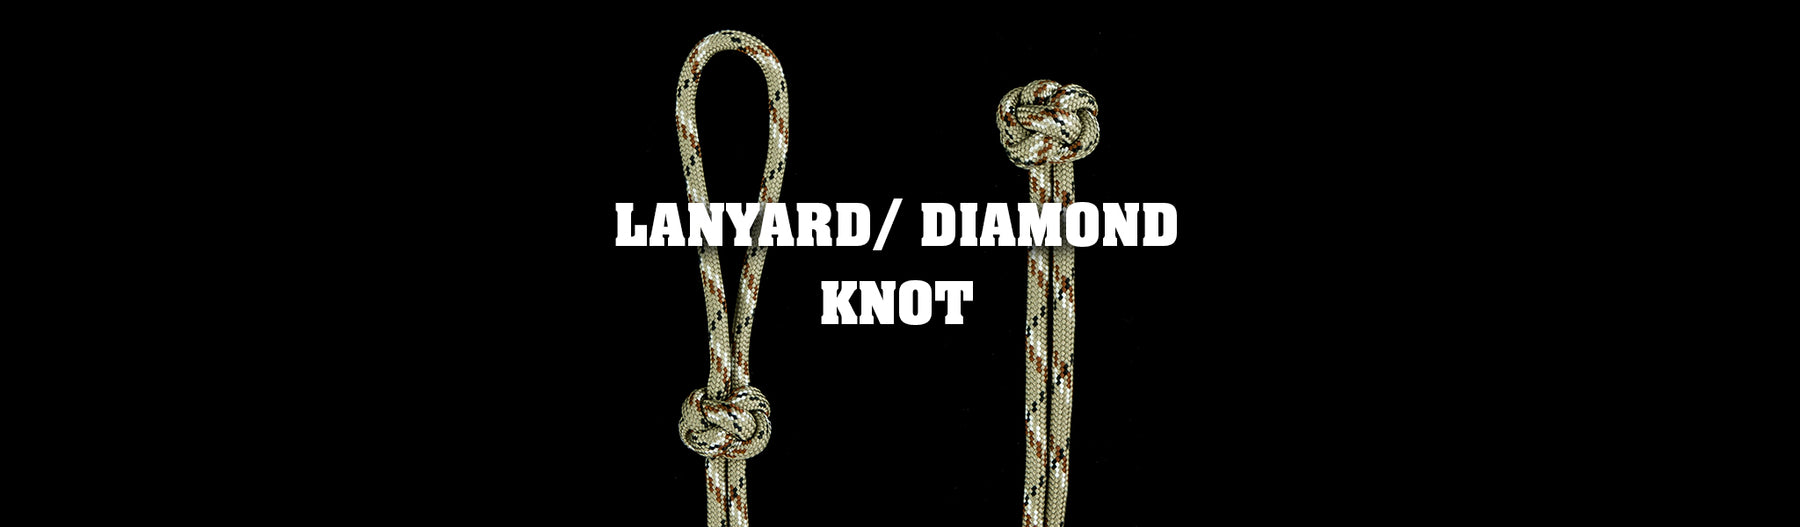 Lanyard/ Diamond Knot Tutorial